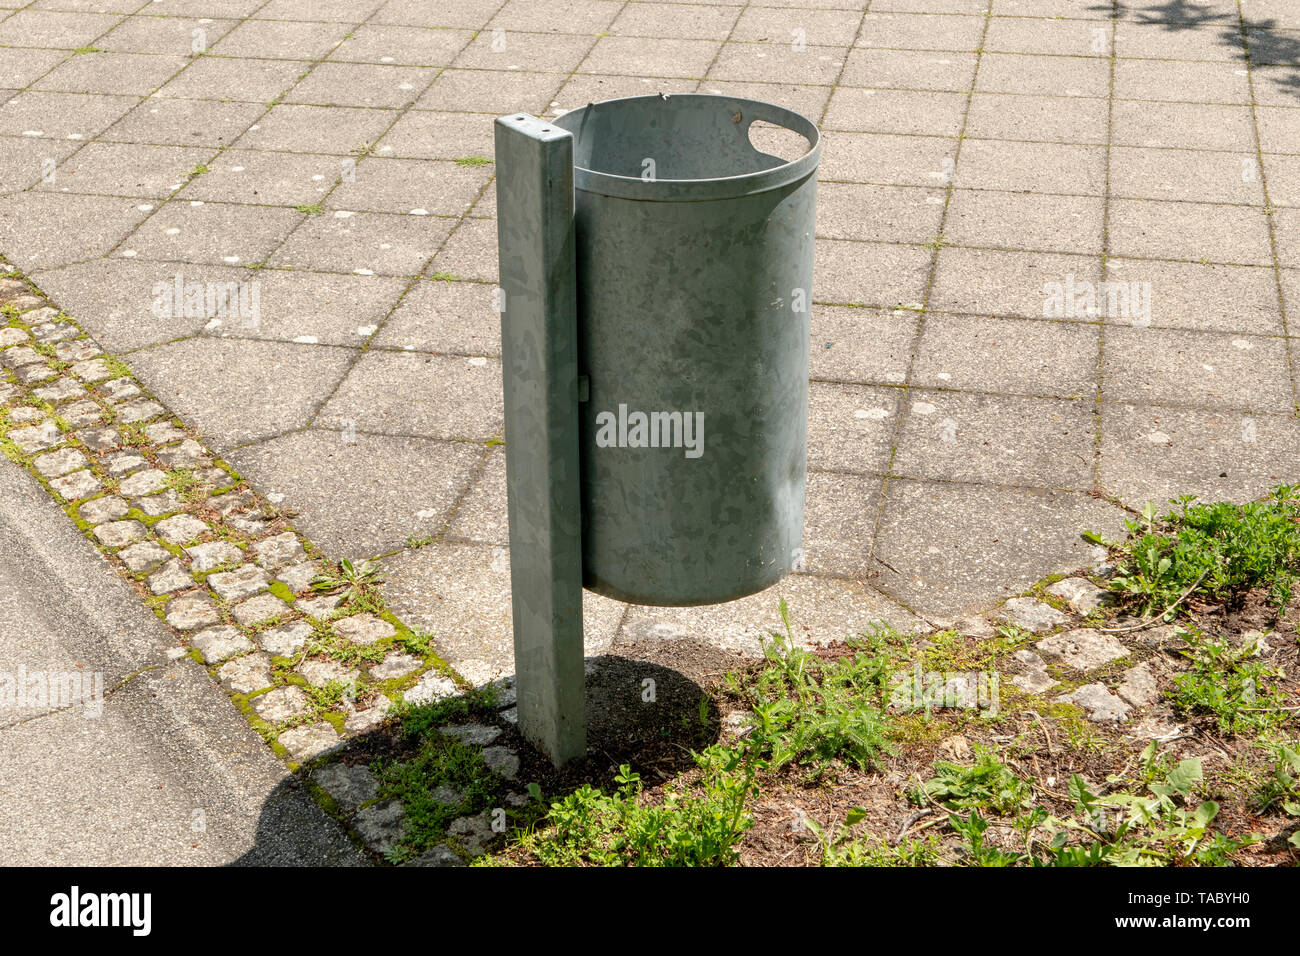 Metal rubbish bin in the park with lawn and paving stones - Stock Image